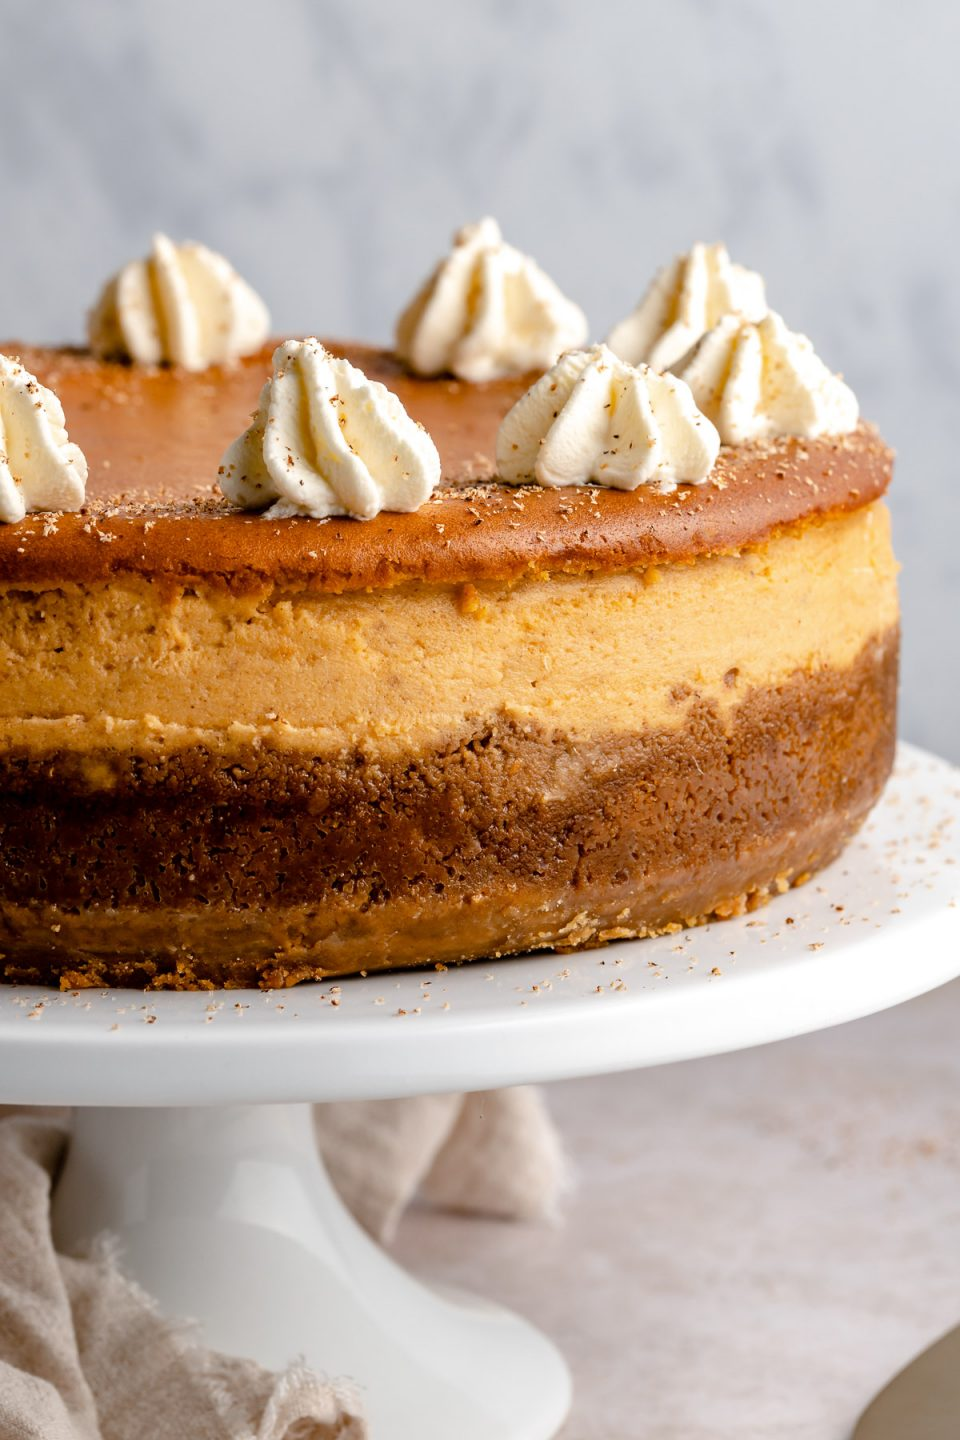 Close up of baked pumpkin cheesecake. The cheesecake is on a white cake stand, topped with piped whipped cream & freshly grated nutmeg.